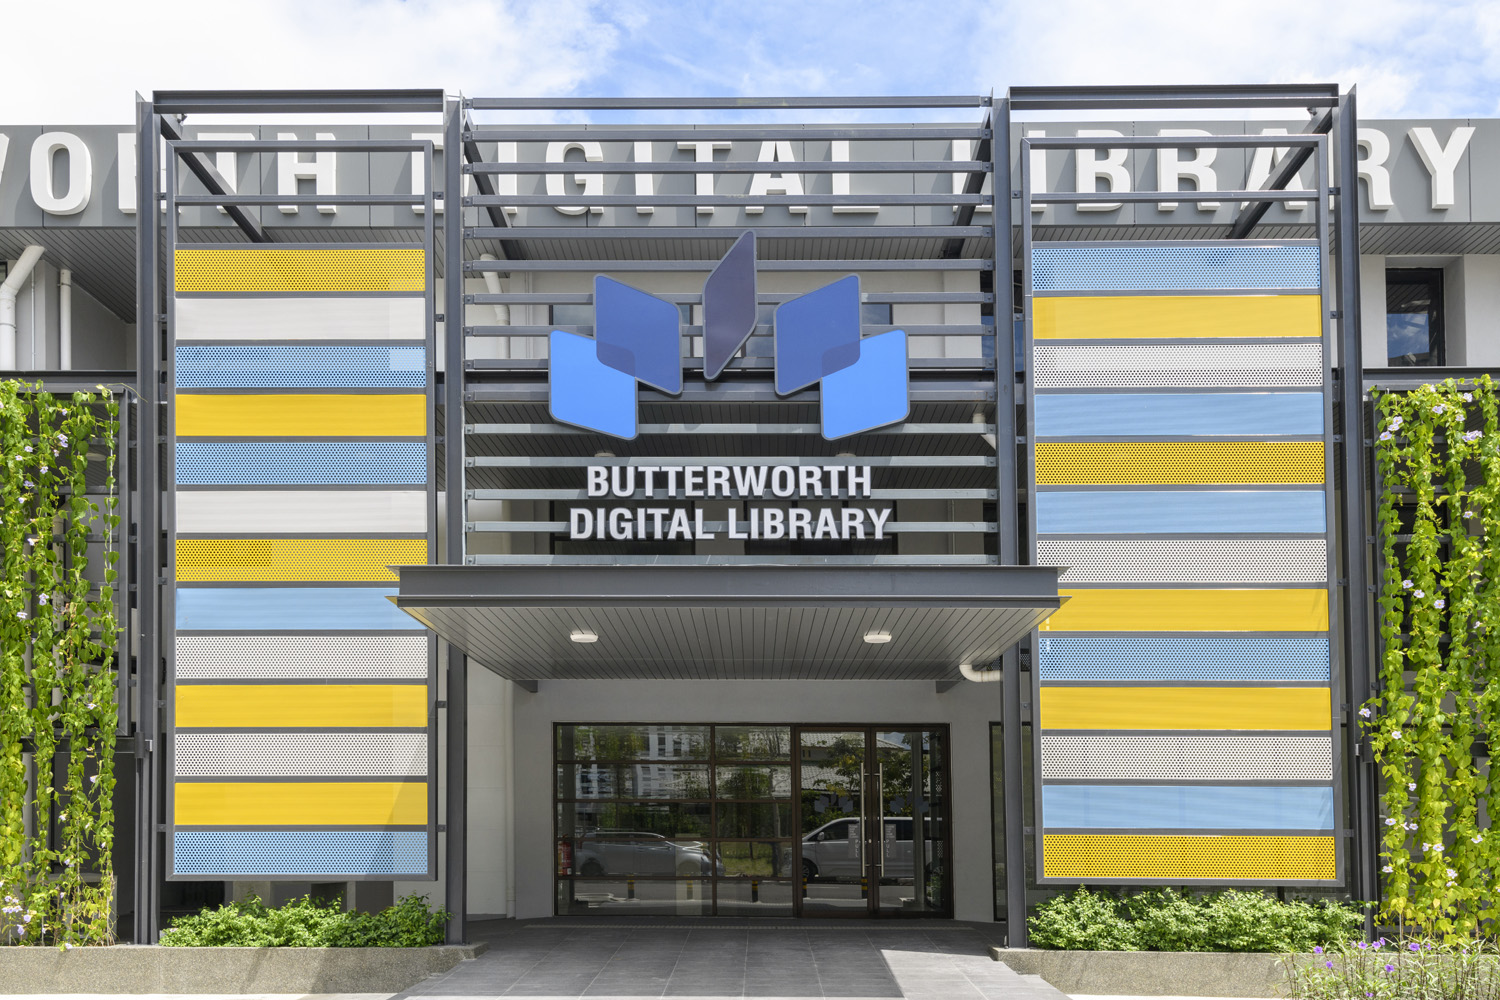 The Butterworth Digital Library, an adaptive reuse project, is equipped with state-of-the-art digital technology to serve communities within a five-kilometre radius